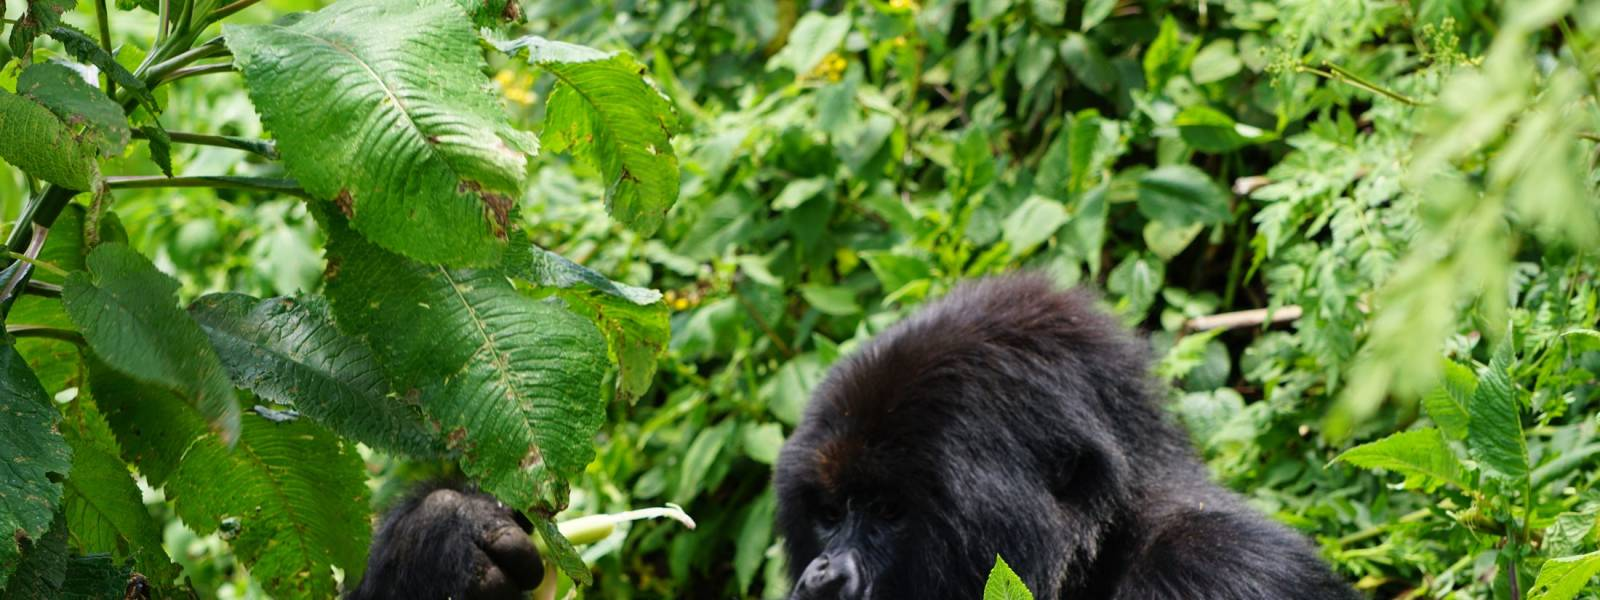 a black bear eating grass in a forest